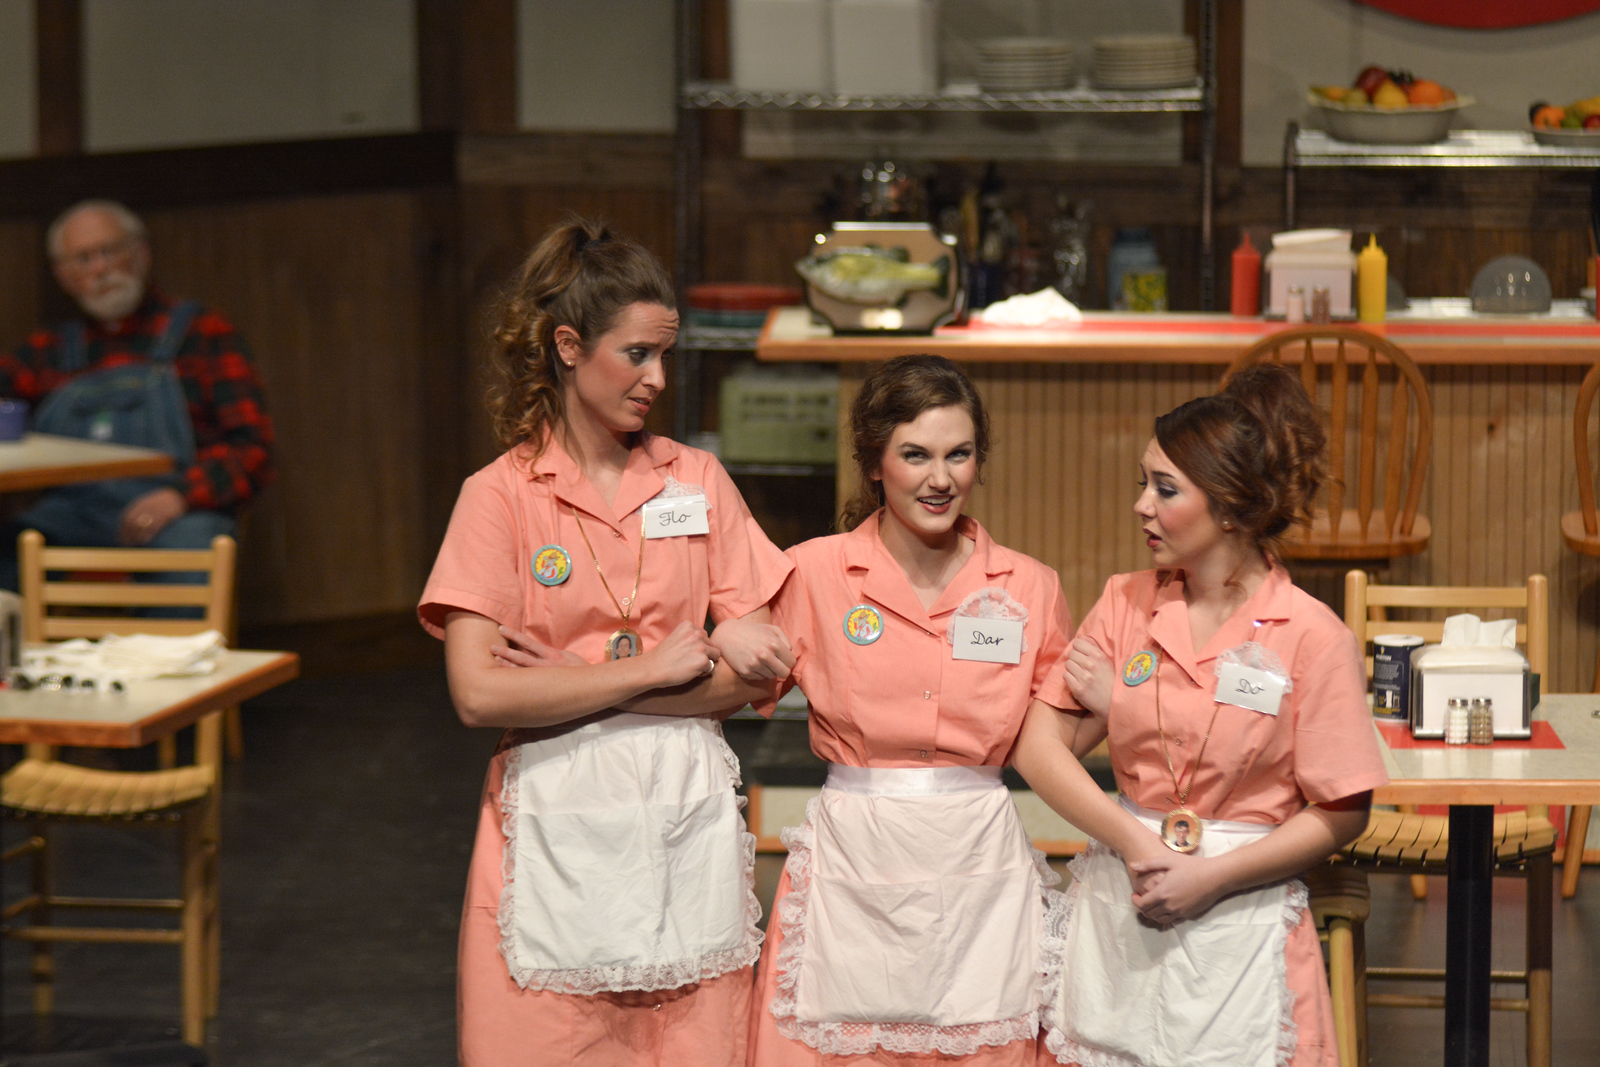 Darlena played by Katie Ujevich, Flodalucy played by Julia Turnbull, and Dorabeulla played by Julia DeSerio